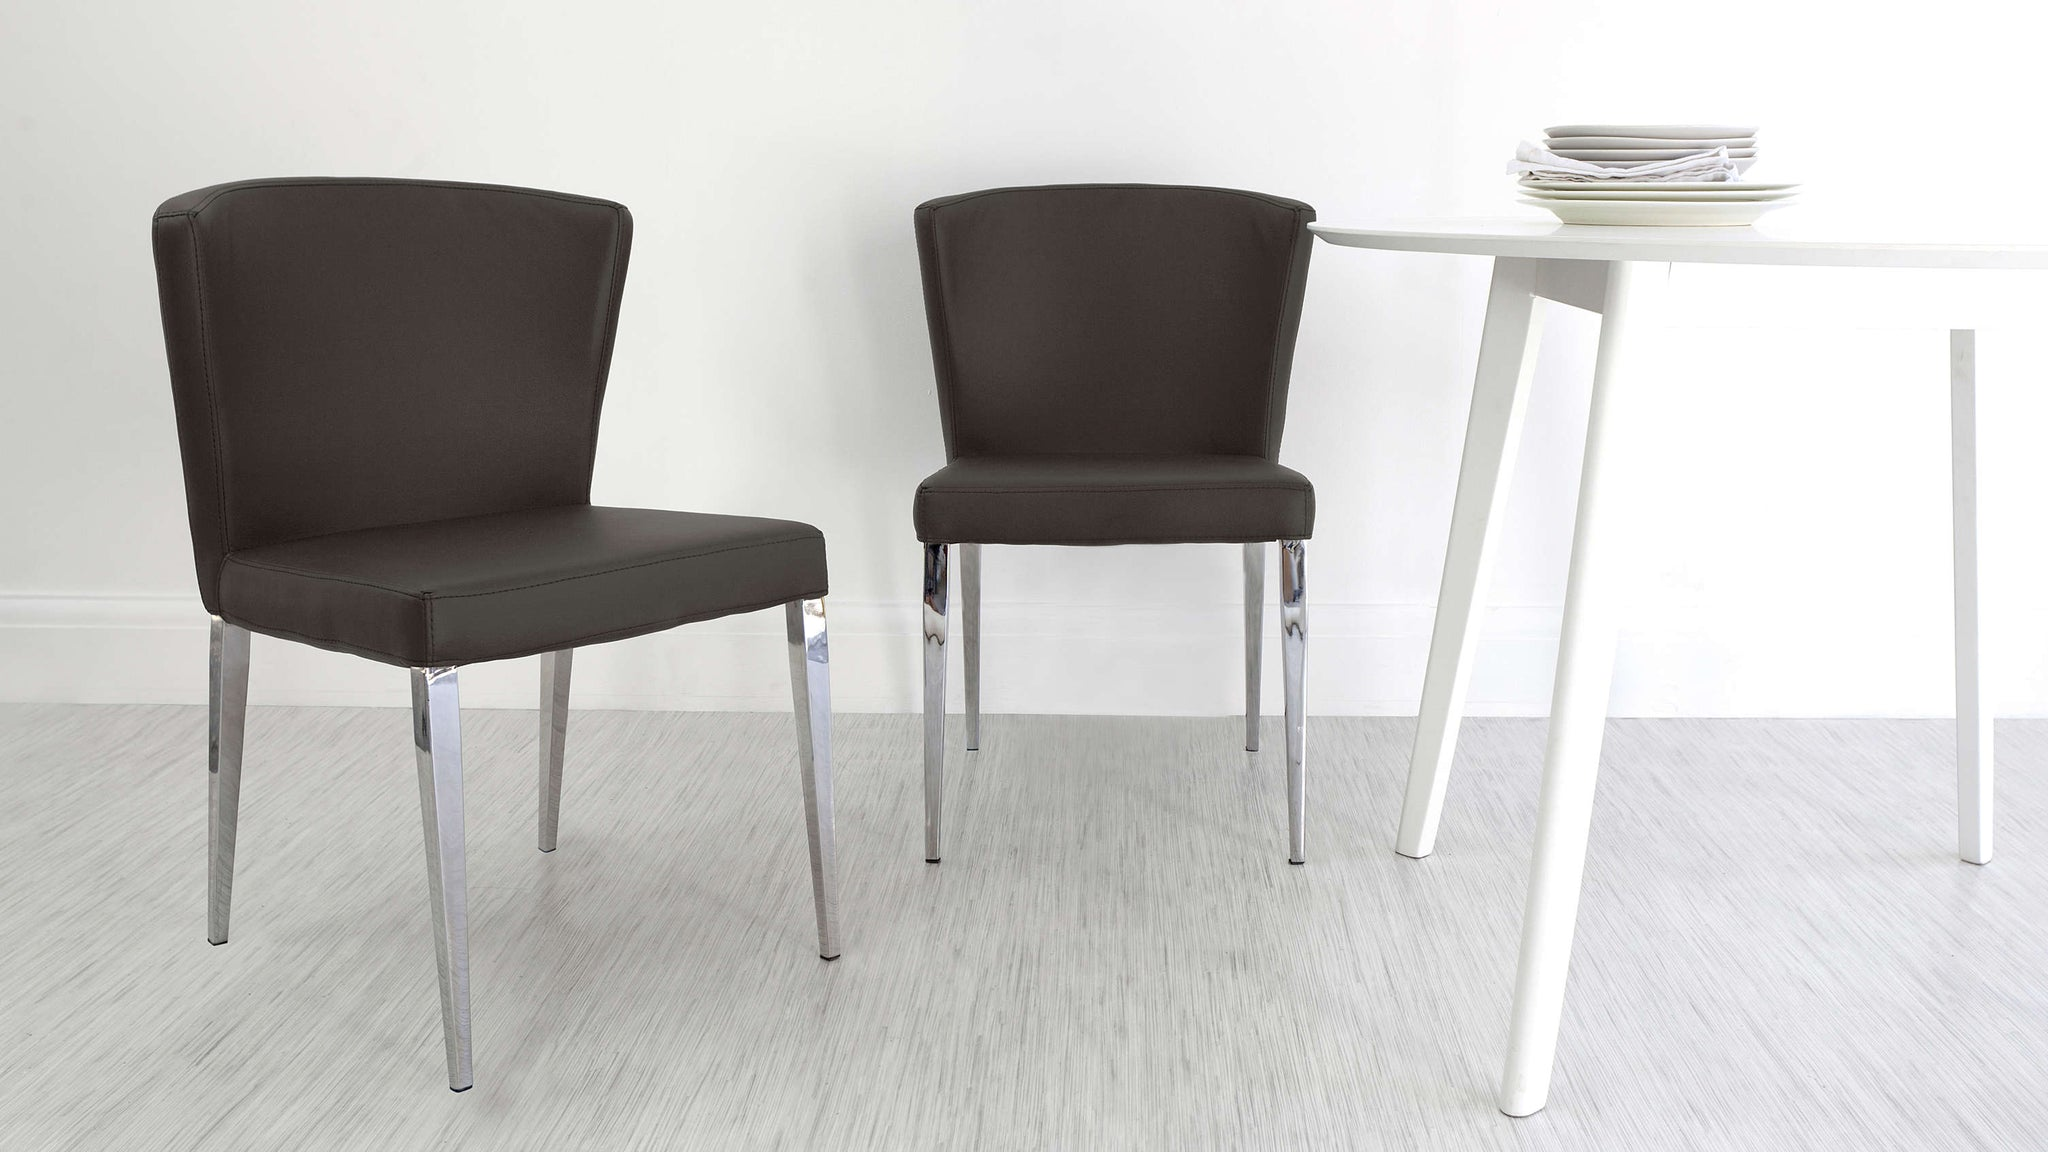 Round Backed Dining Chairs with Chrome Legs